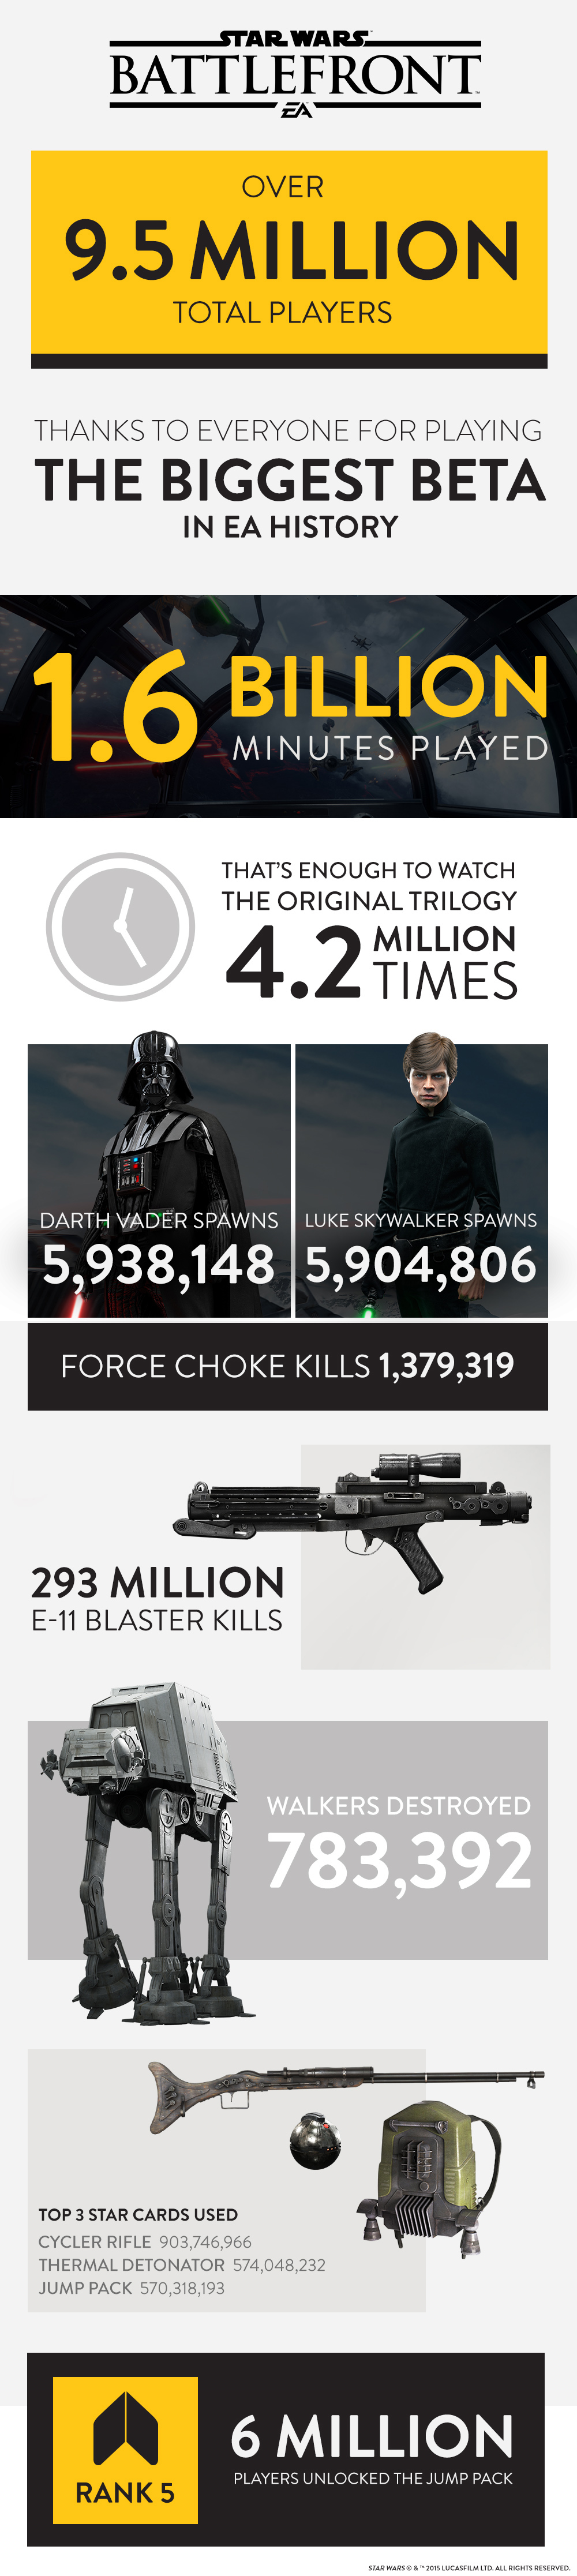 star wars battlefront info graphic